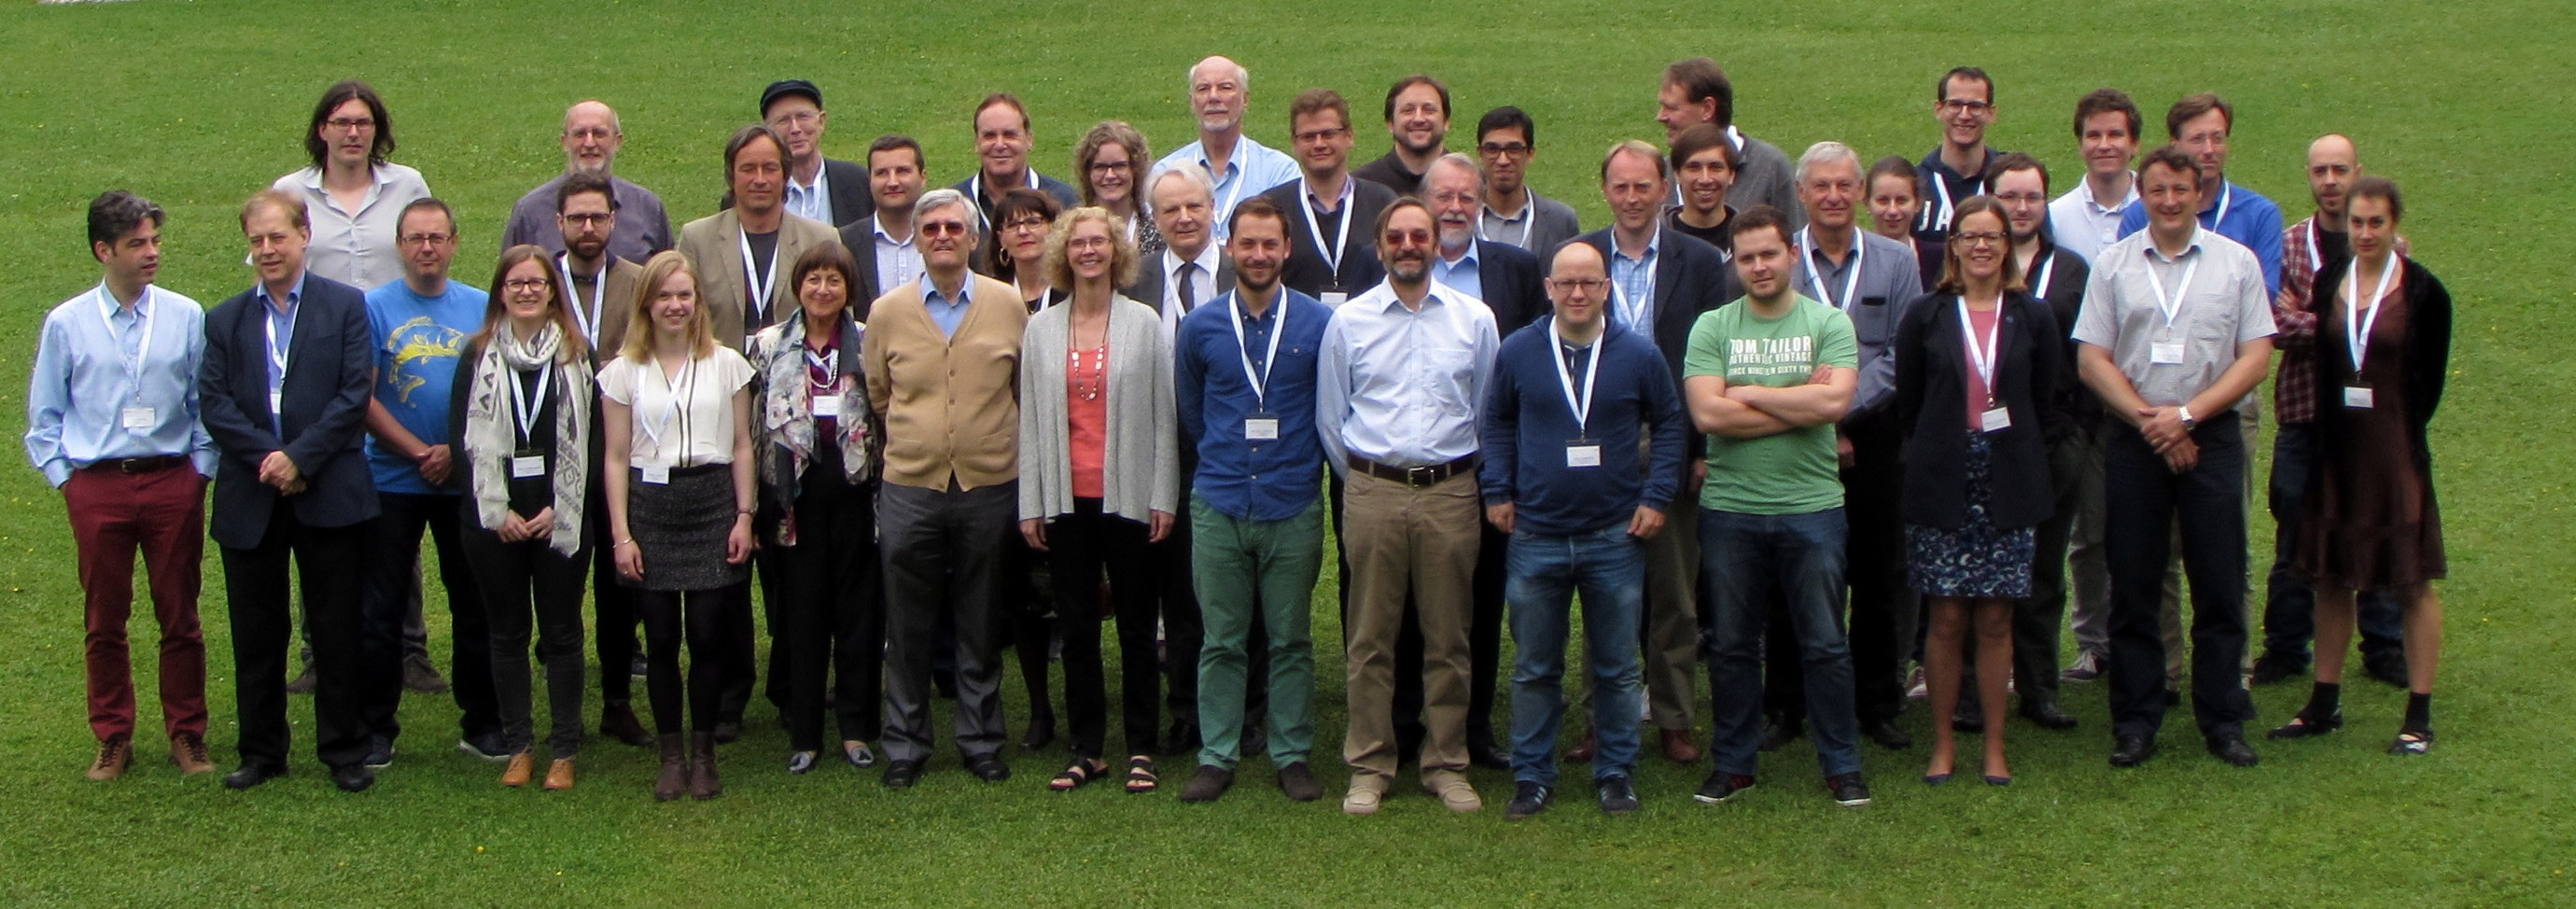 Conference Photo 2